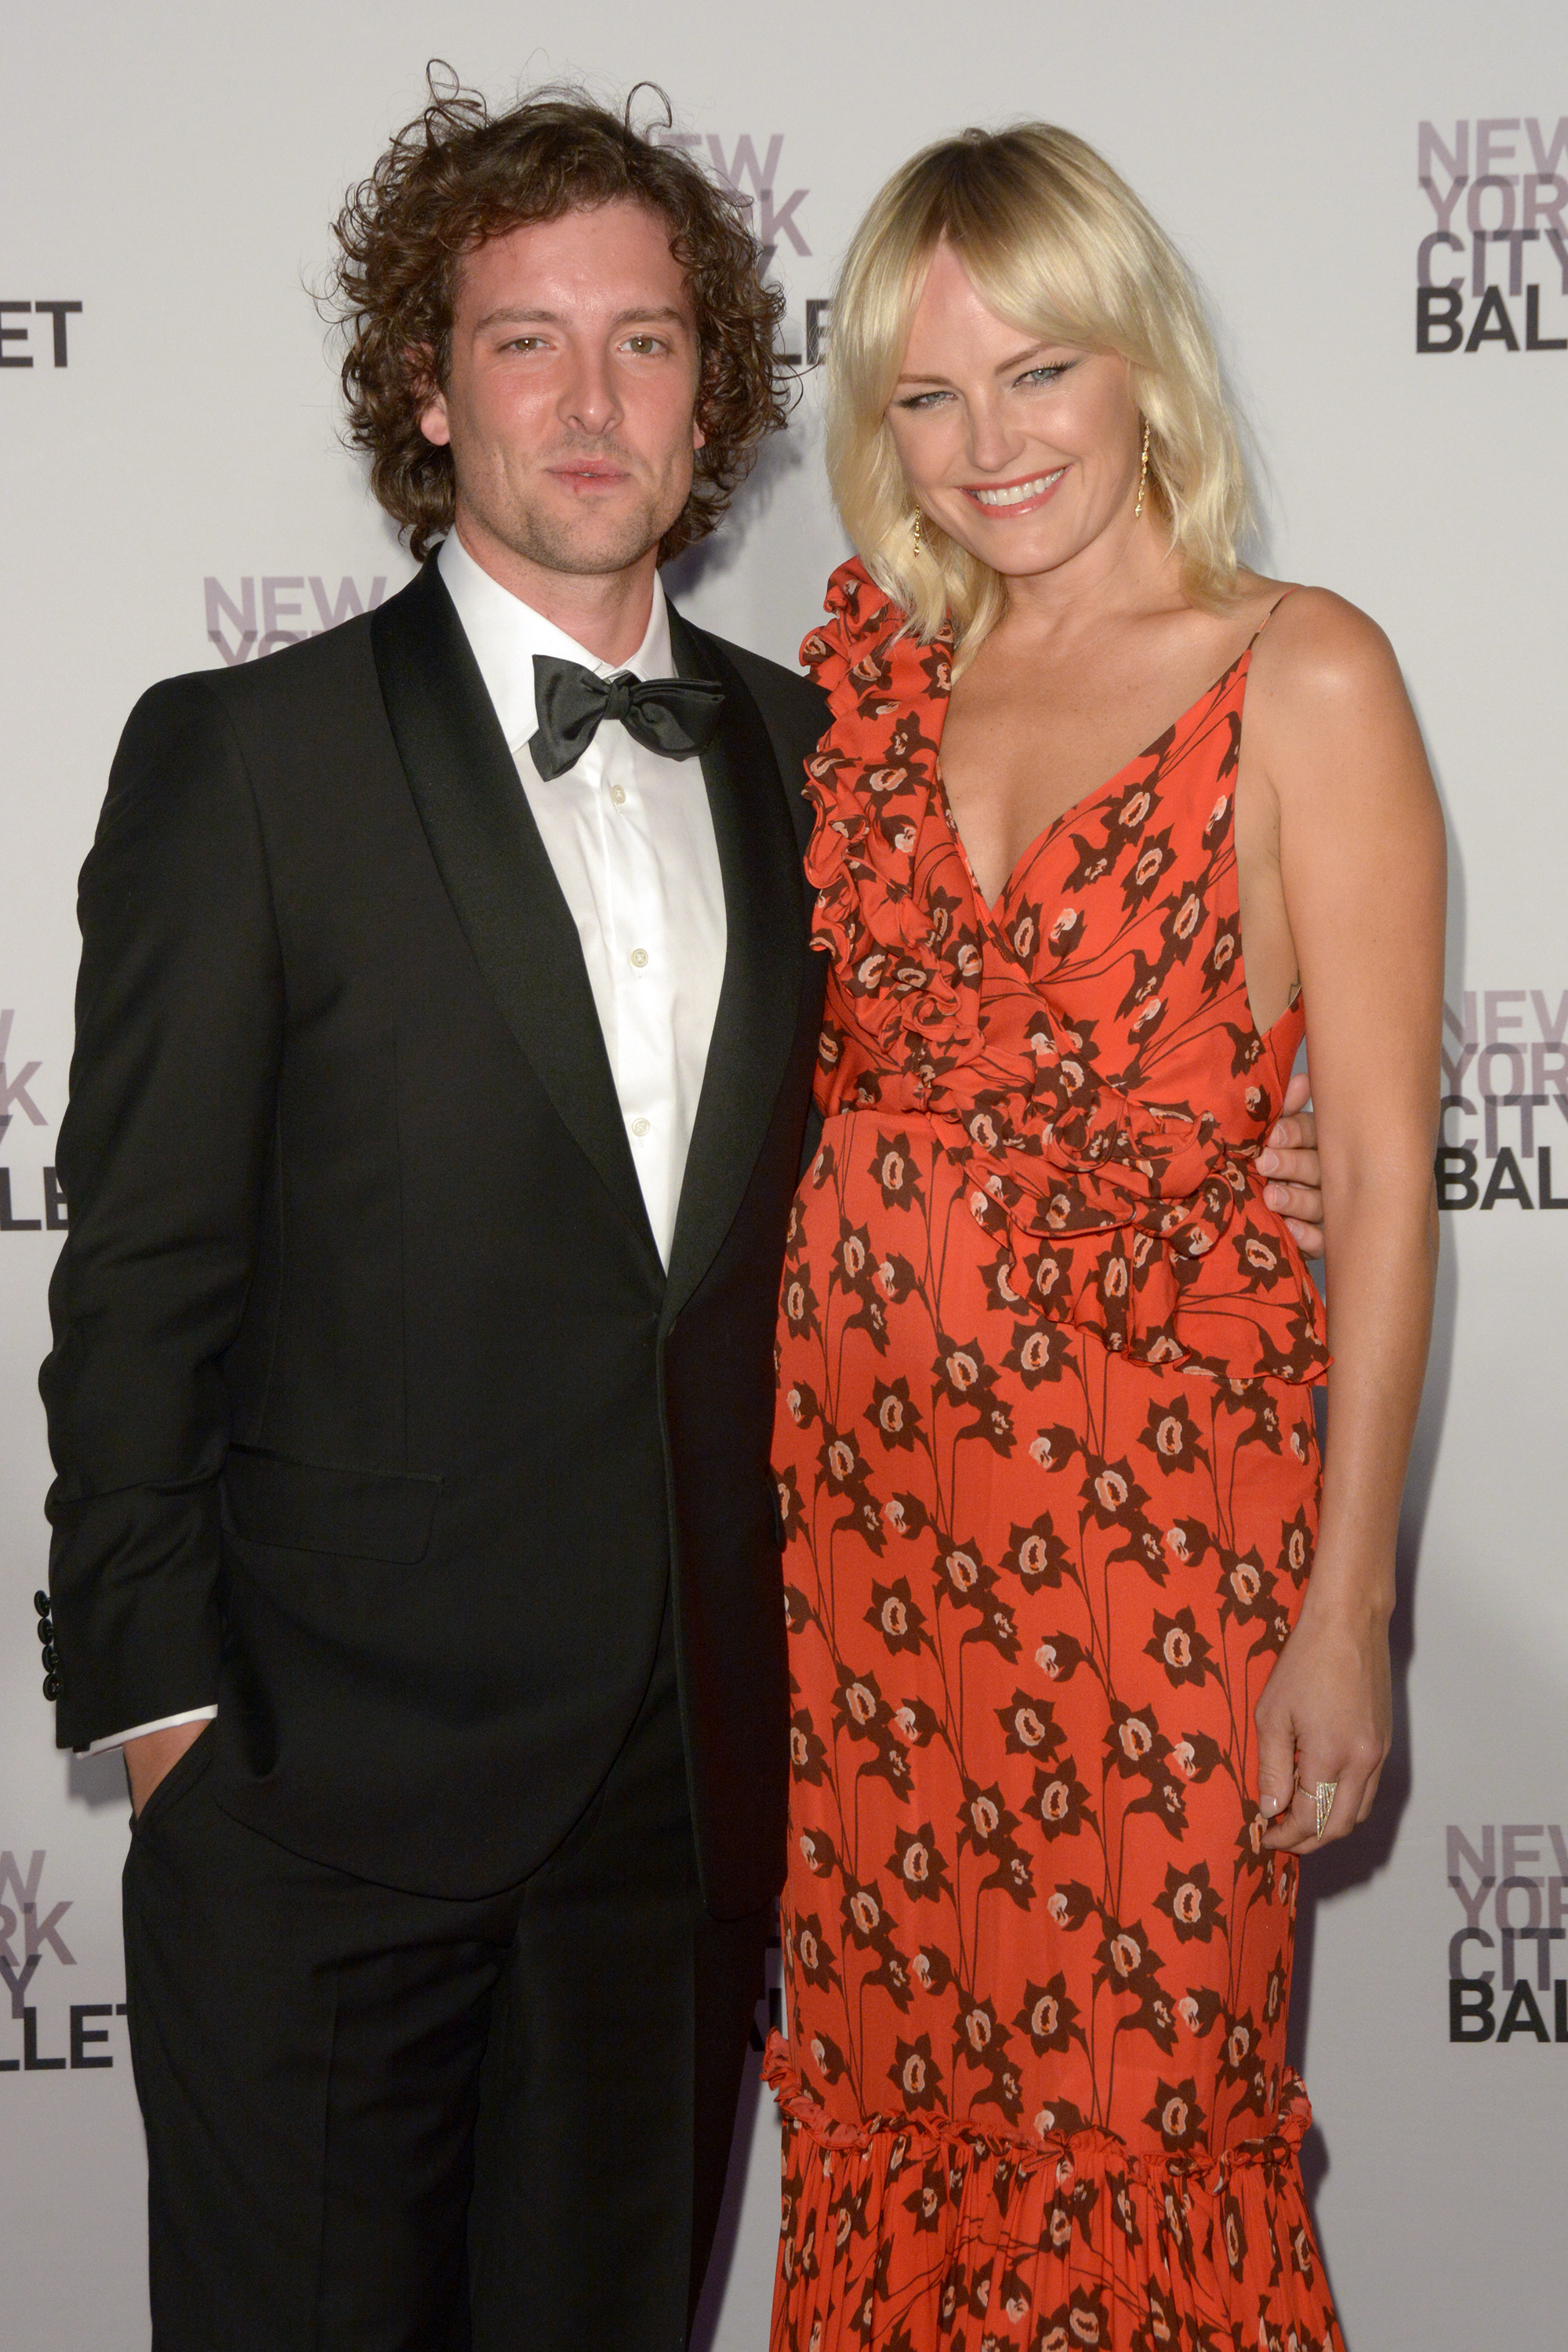 *New York City Ballet 2017 Fall Fashion Gala at David H. Koch Theater at Lincoln Center                                                                          Featuring: Jack Donnelly, Malin Akerman                                     Where: New York, New York, United States                                     When: 29 Sep 2017                                     Credit: Ivan Nikolov/WENN.com